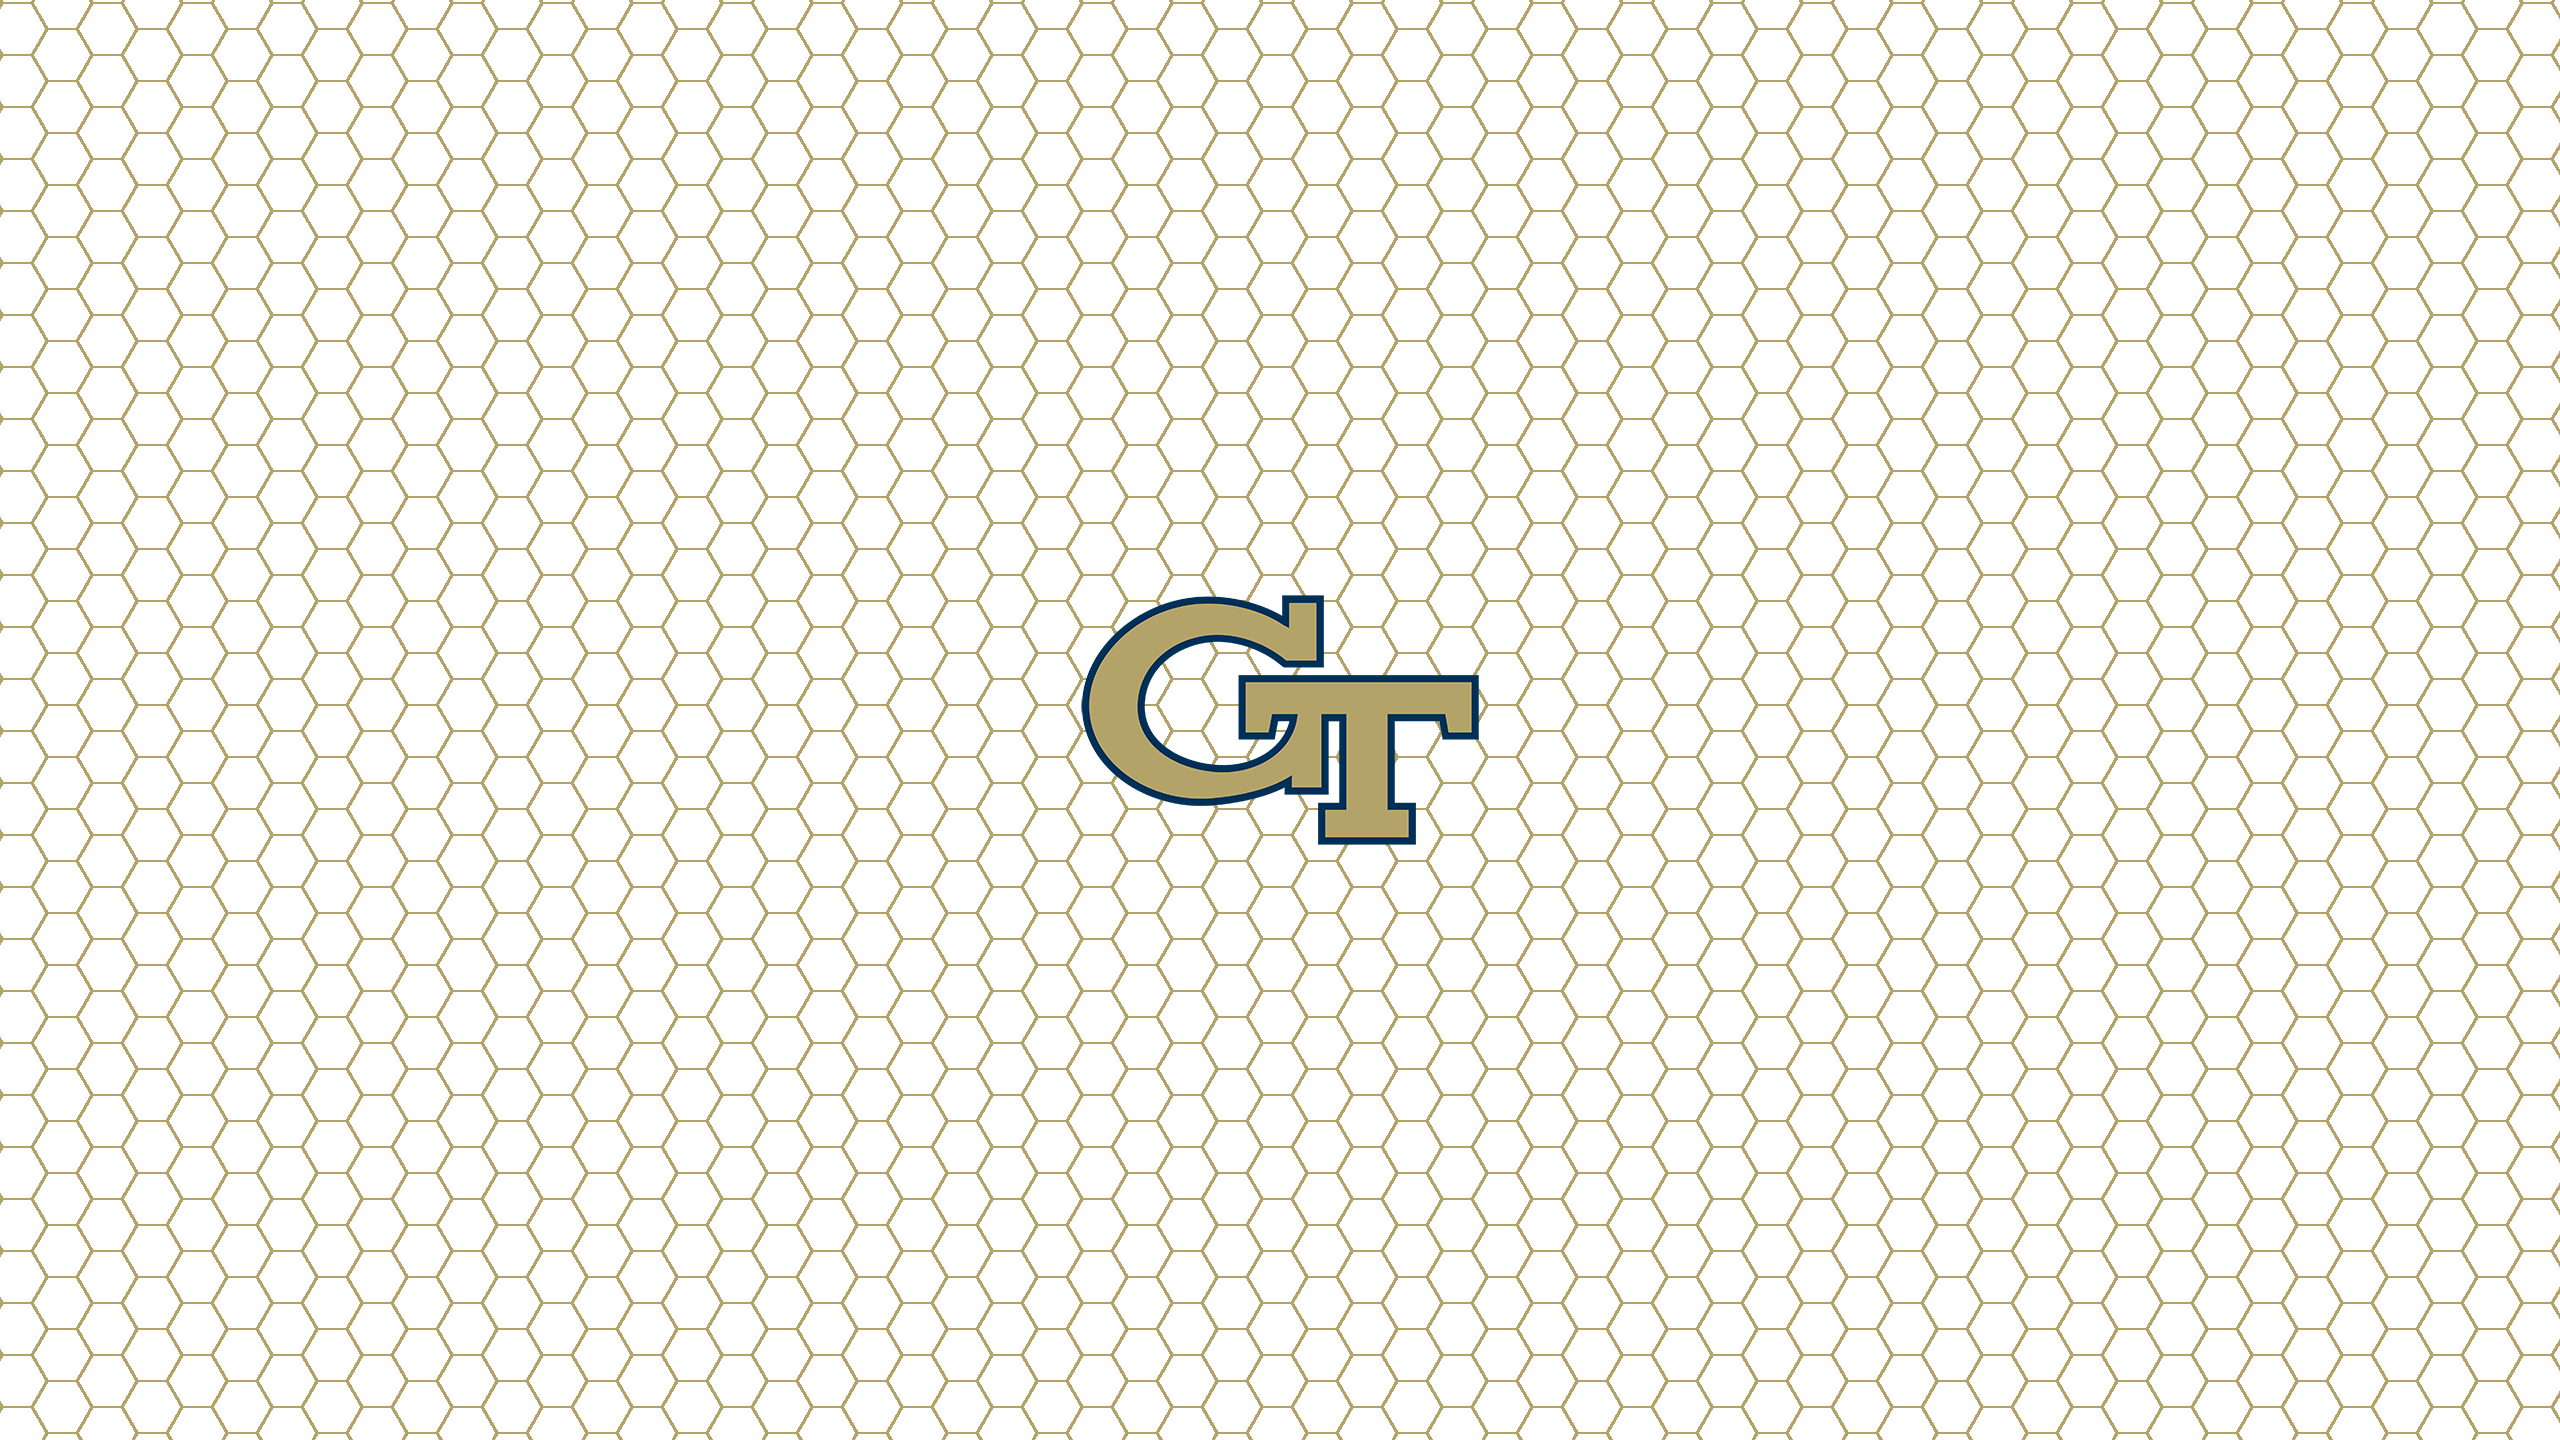 Georgia Tech Yellow Jackets (Honeycomb)